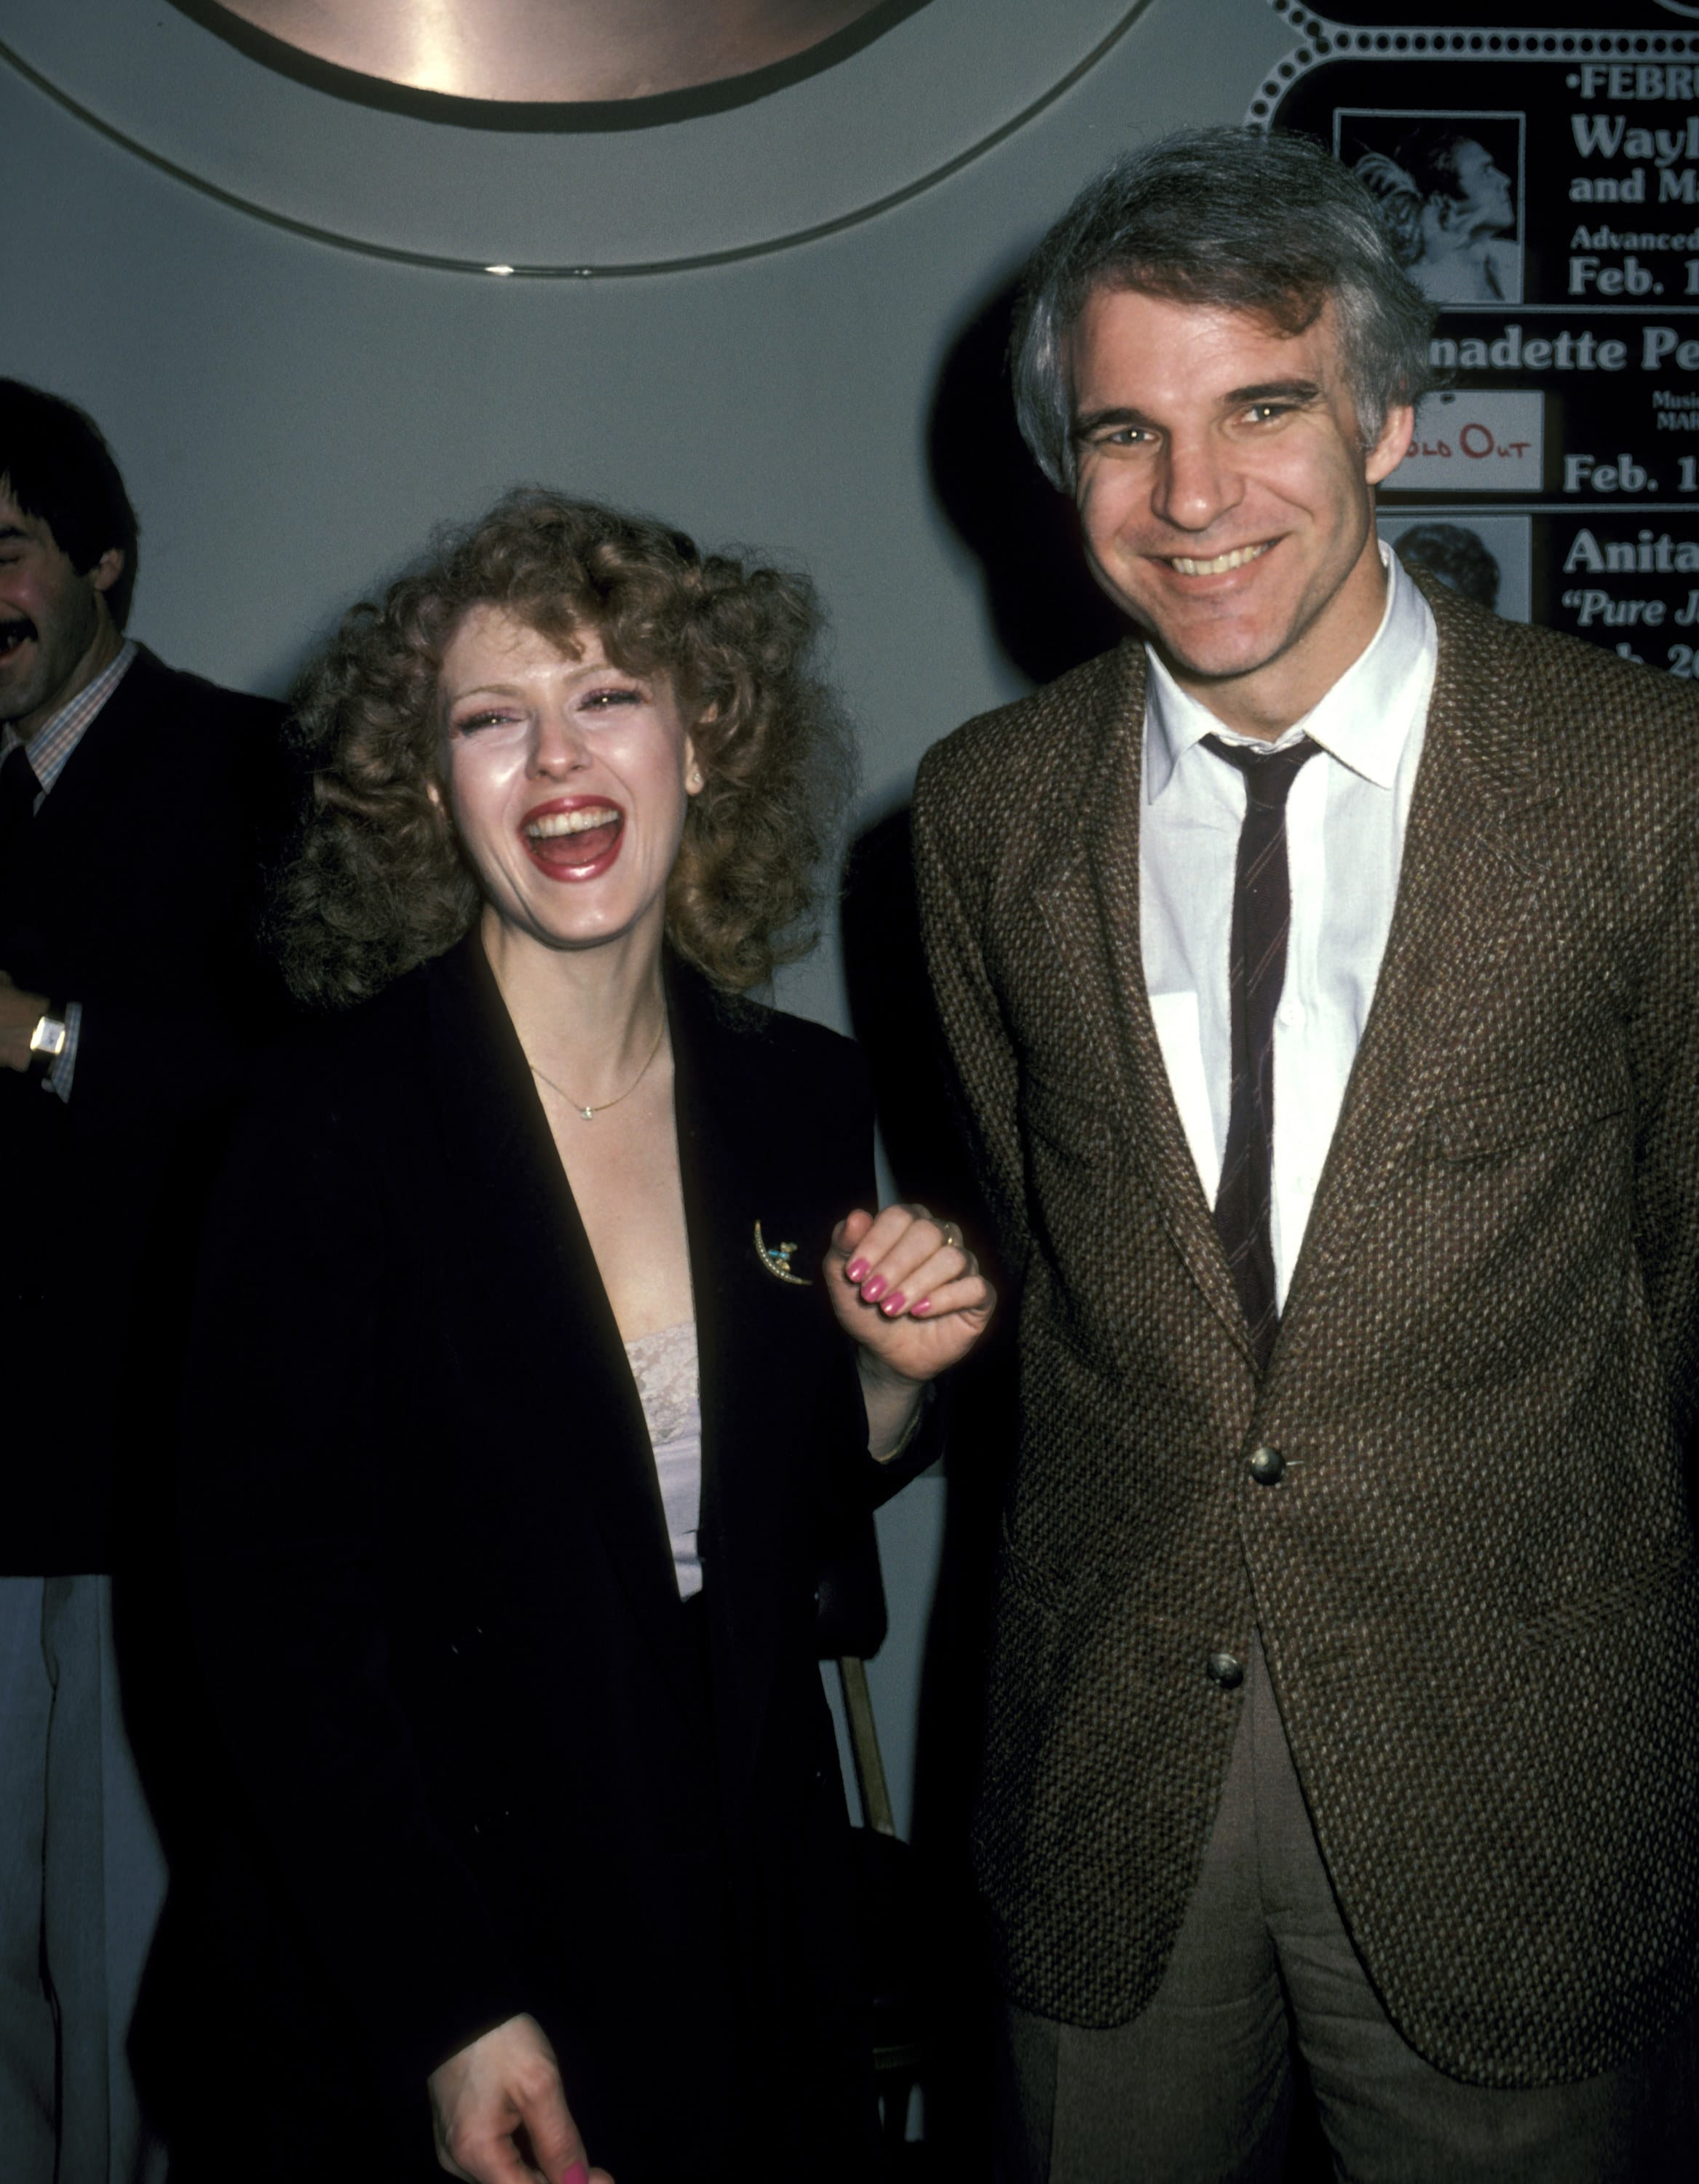 Martin and Peters during an opening at an LA theater in 1980